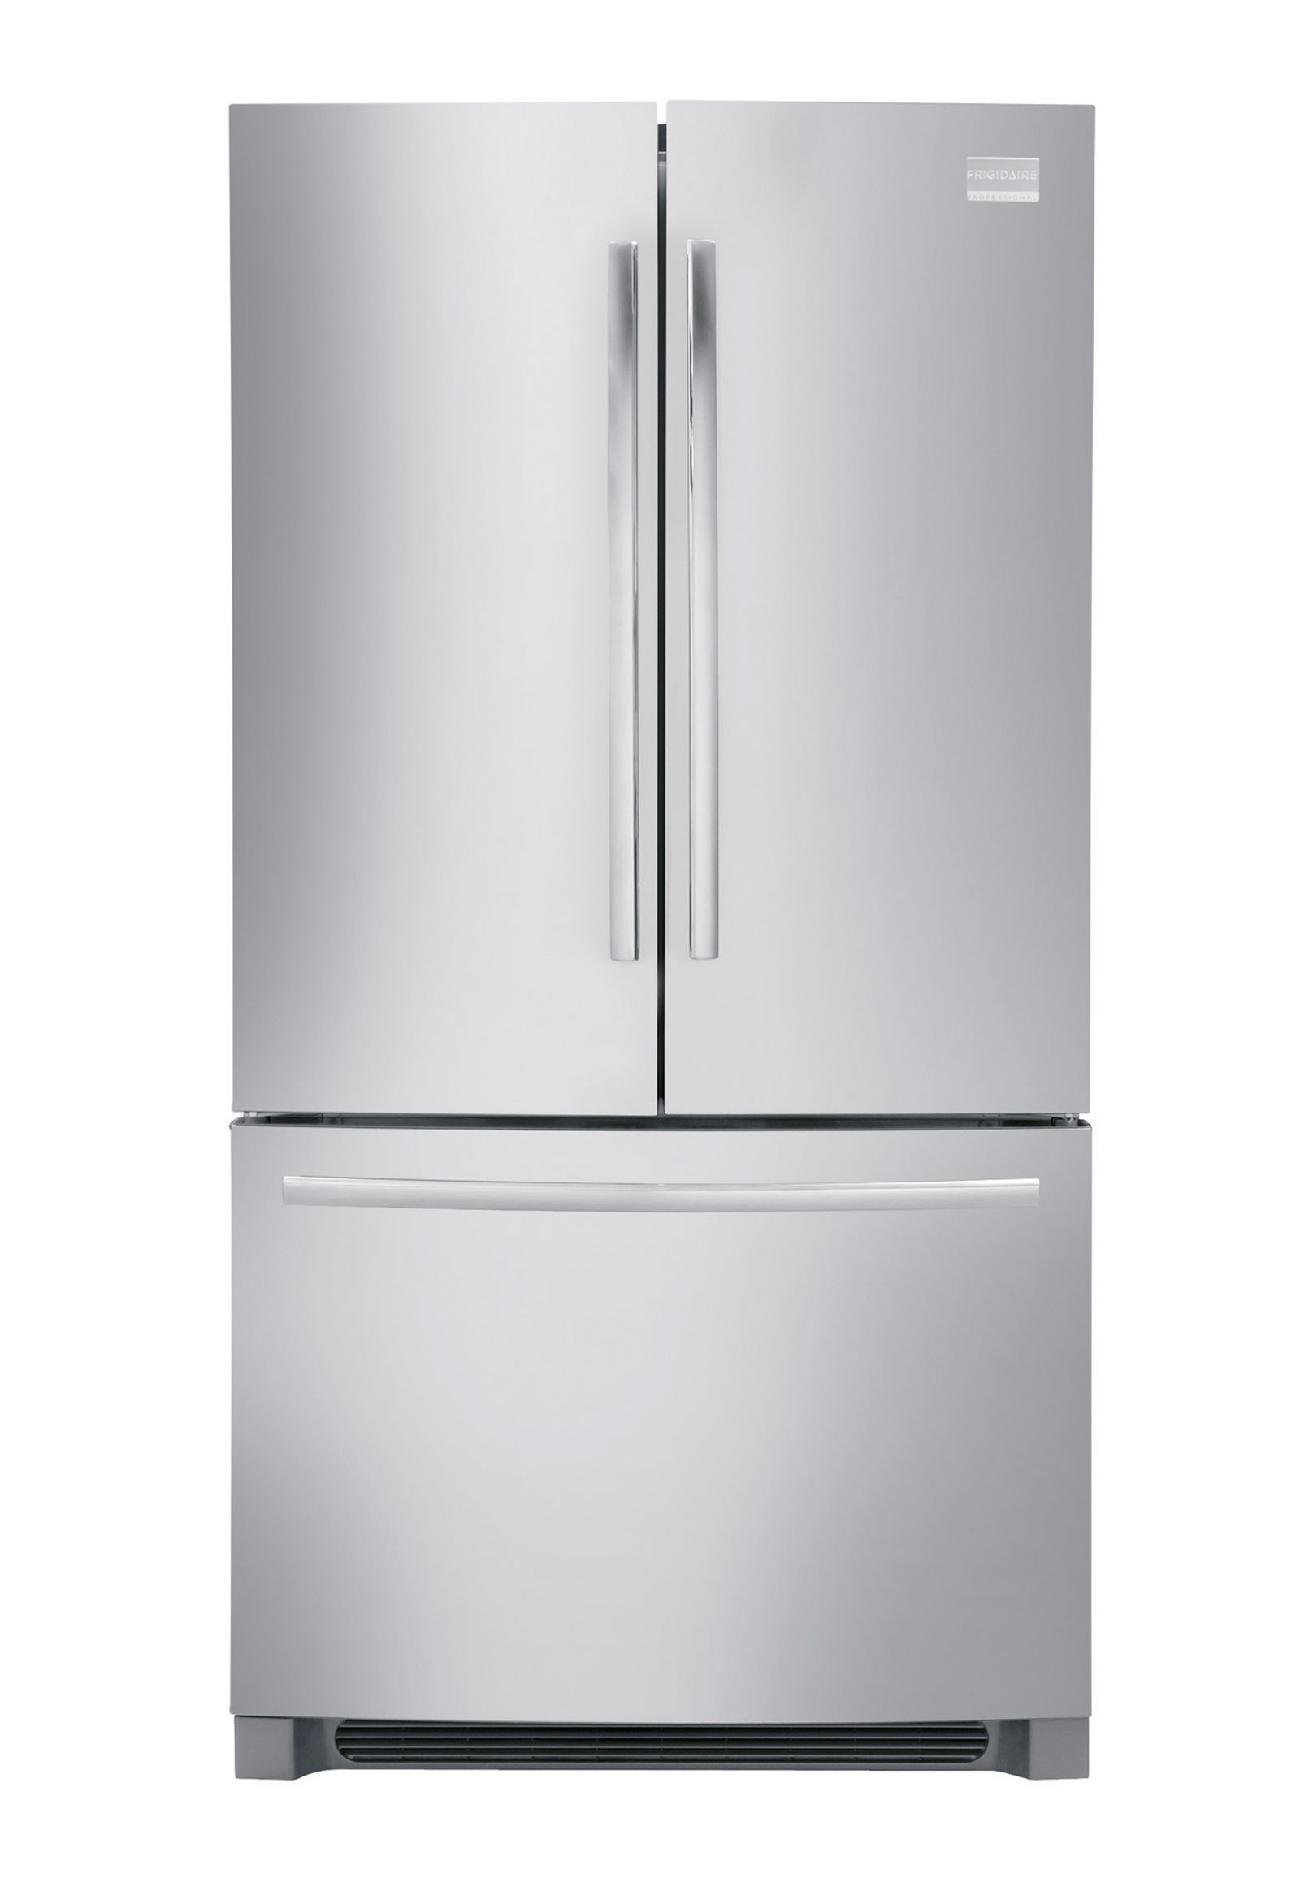 Stainless French Refrigerator Door Steel Proof Smudge